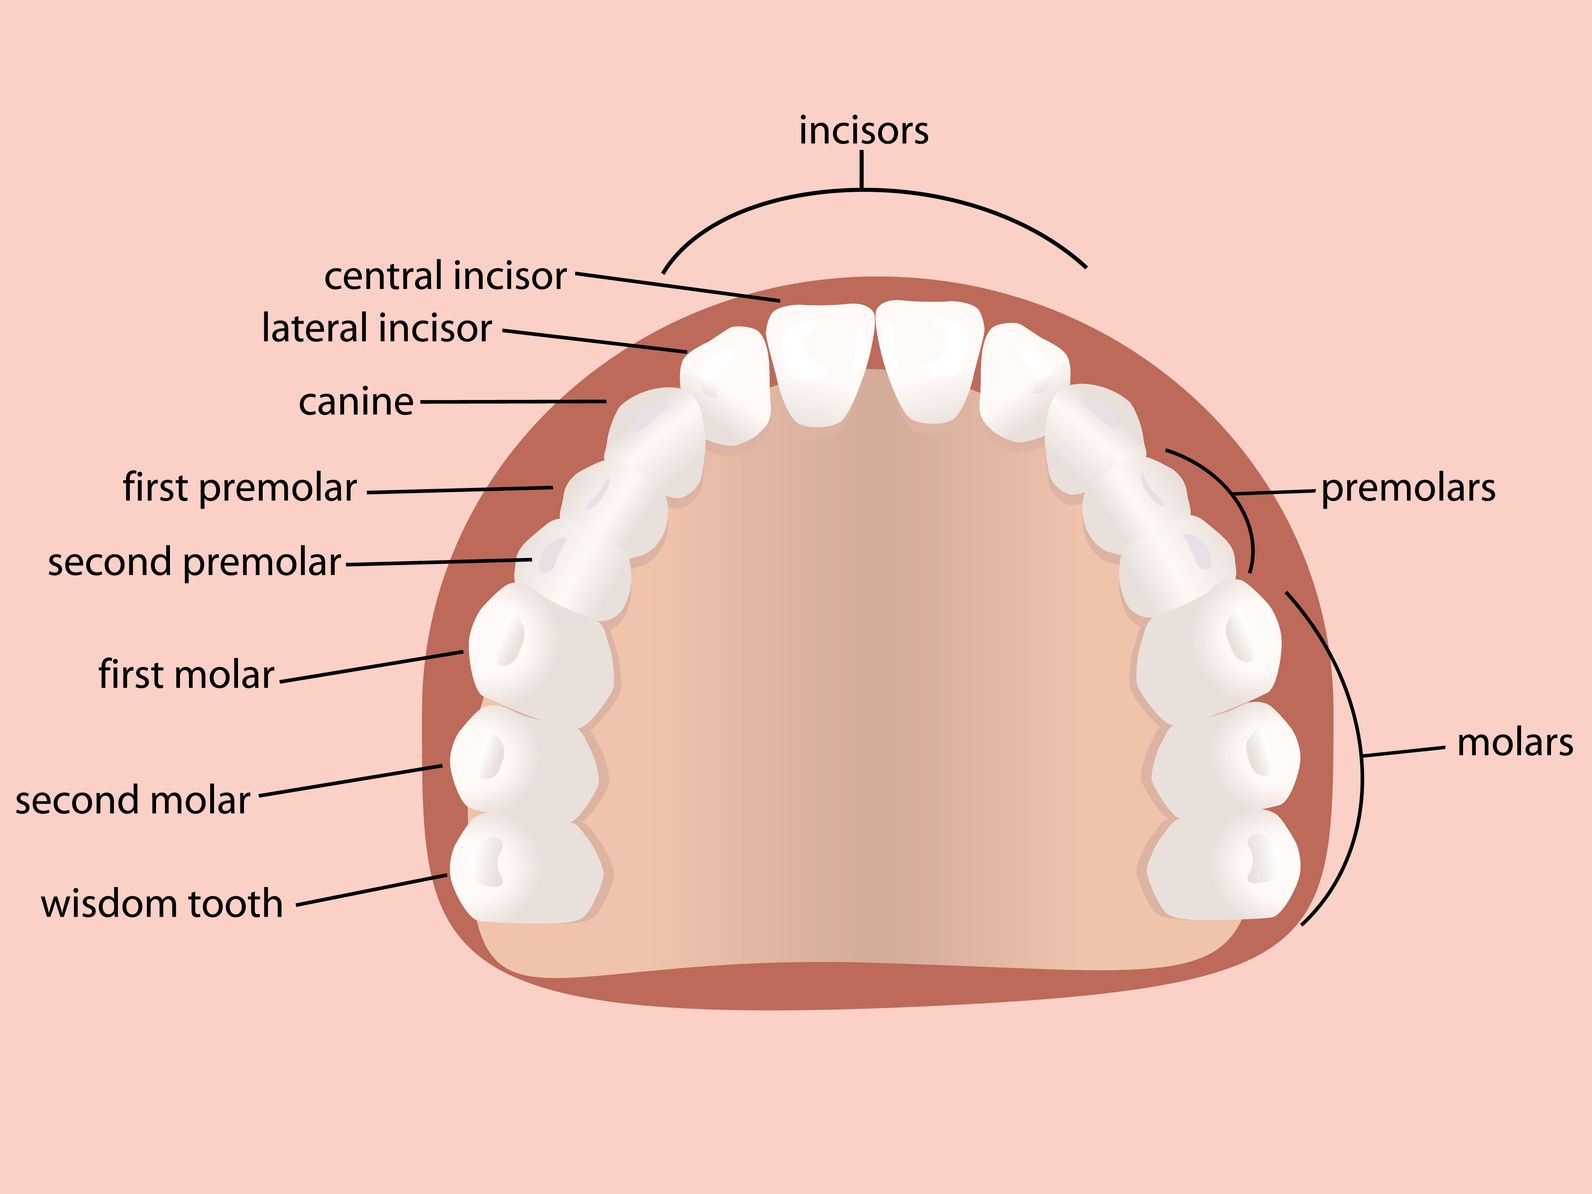 by the age of 18 the average adult has 32 teeth 16 teeth on top and 16 teeth on bottom each tooth in the mouth has a specific name and function  [ 1592 x 1194 Pixel ]